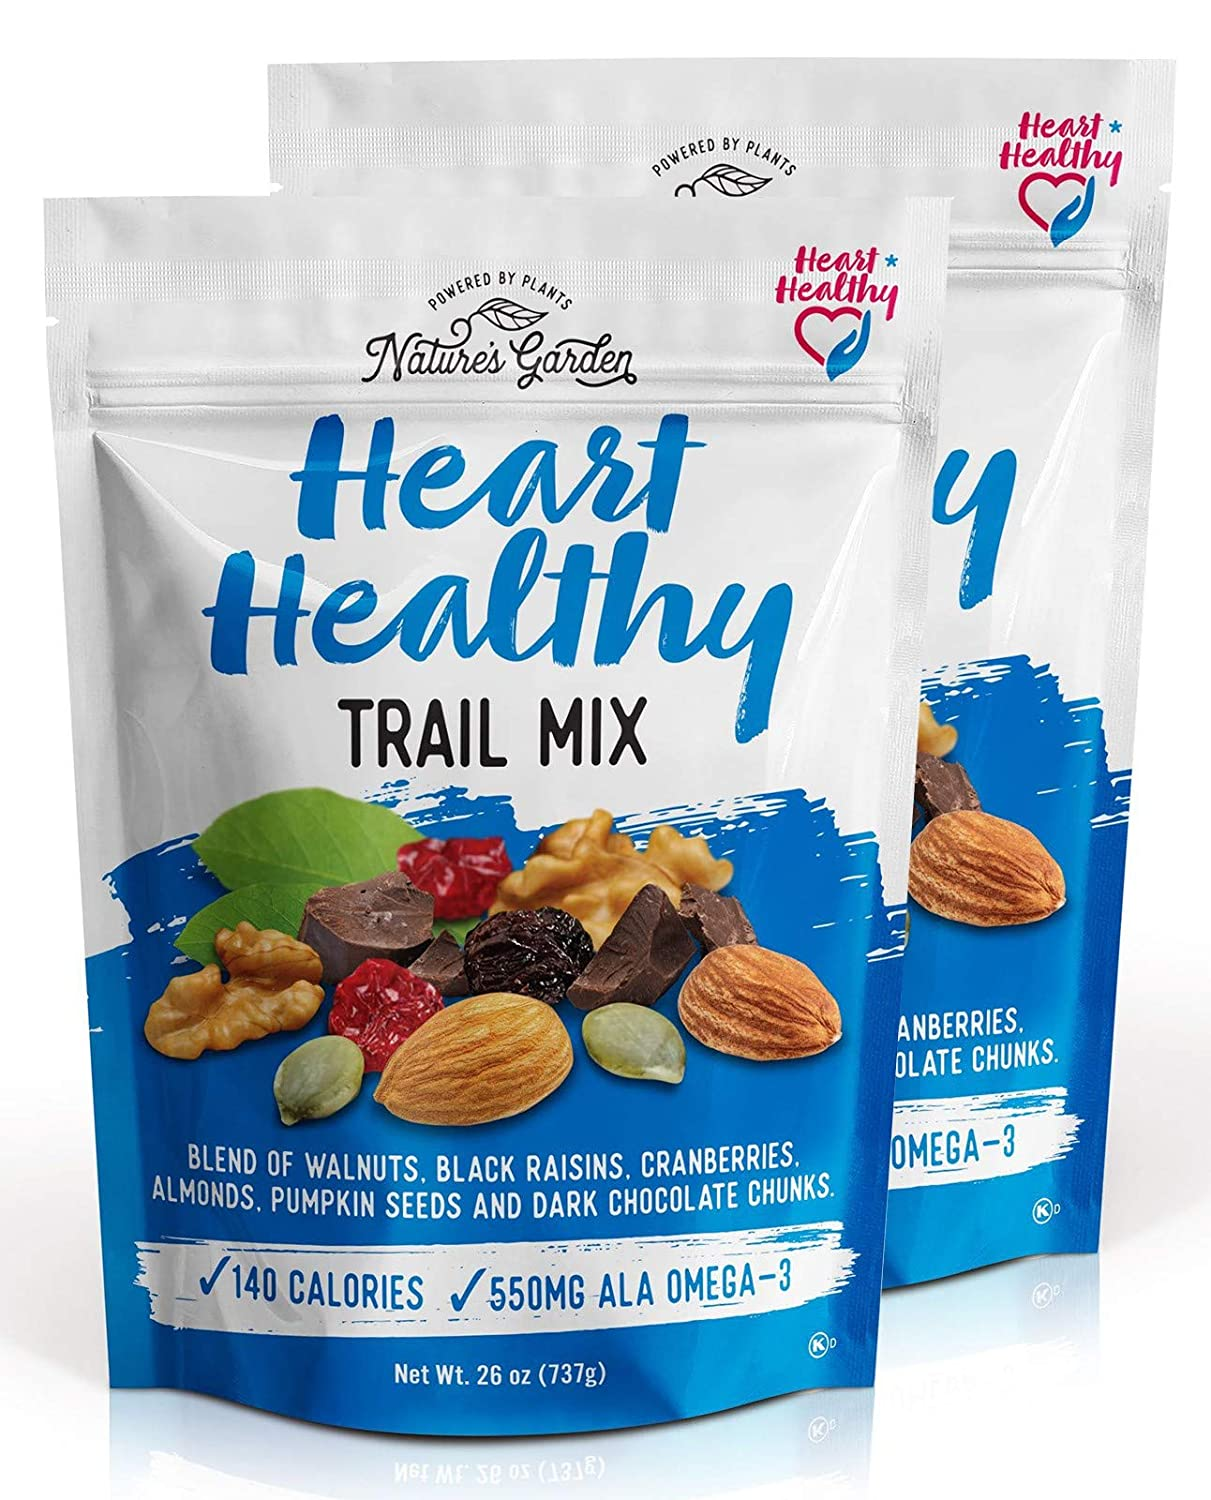 Nature's Garden Heart Healthy Trail Mix - 26 oz (Pack of 2)